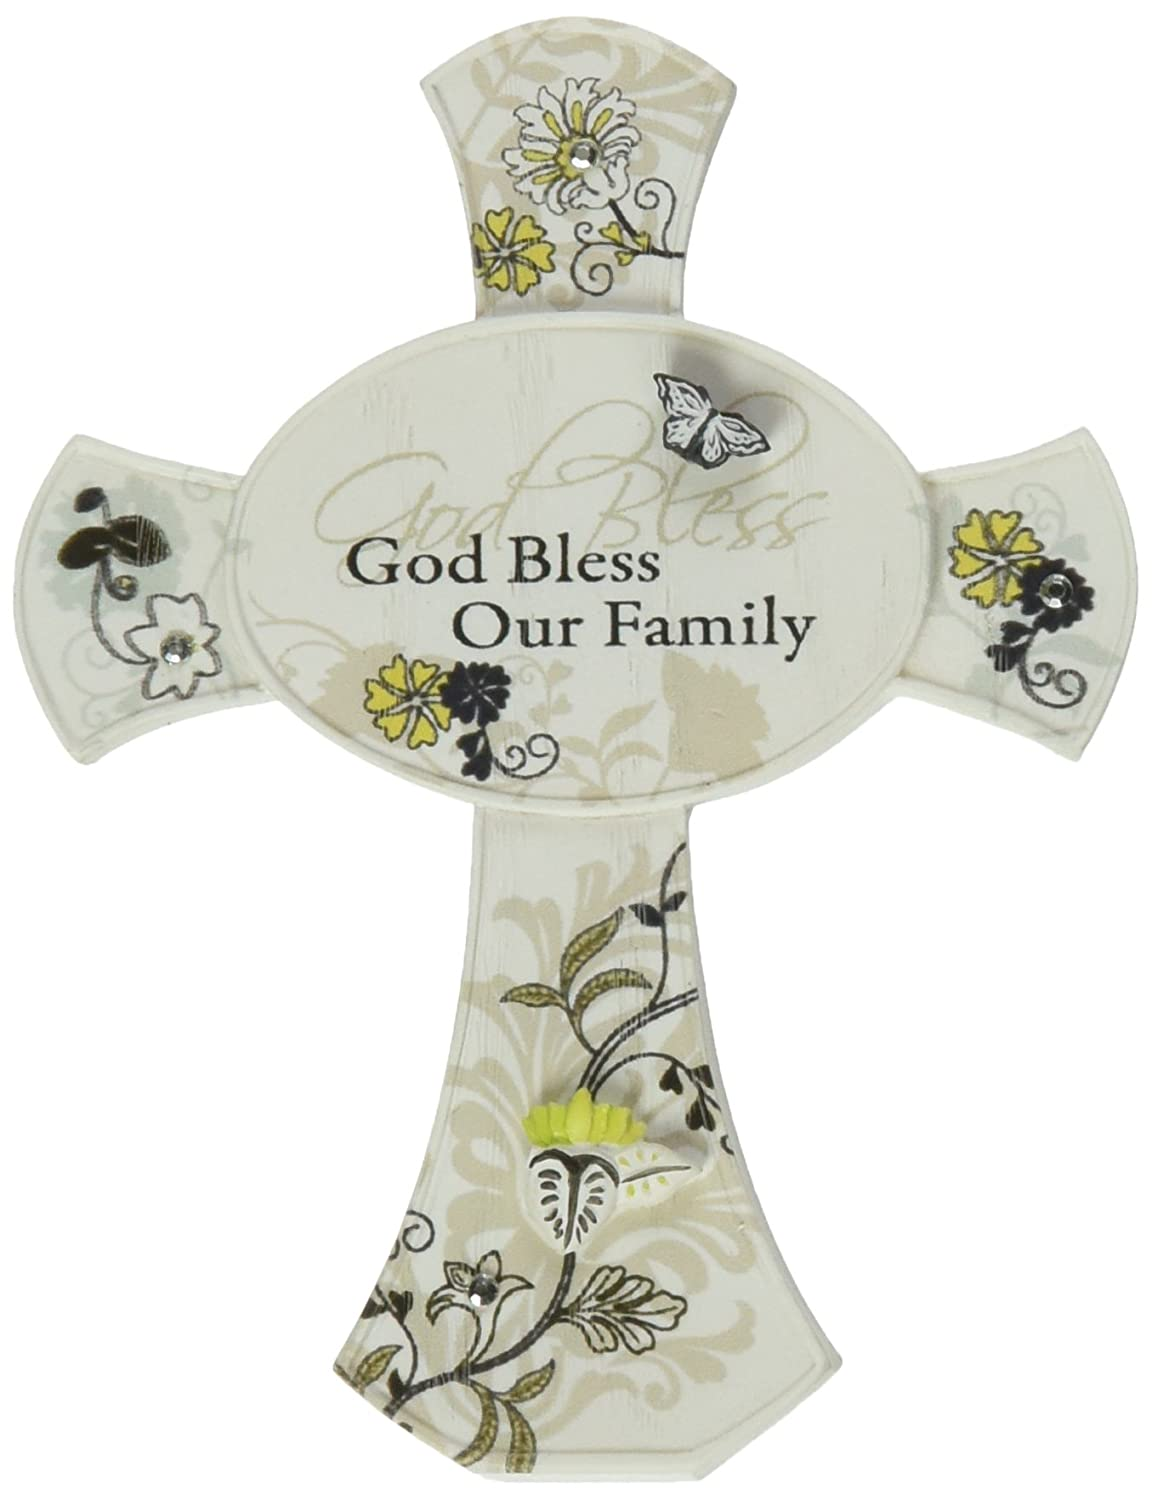 Mark My Words God Bless Our Family Cross, 3-1/2-Inch Tall, Self Standing Pavilion Gift Company 66236